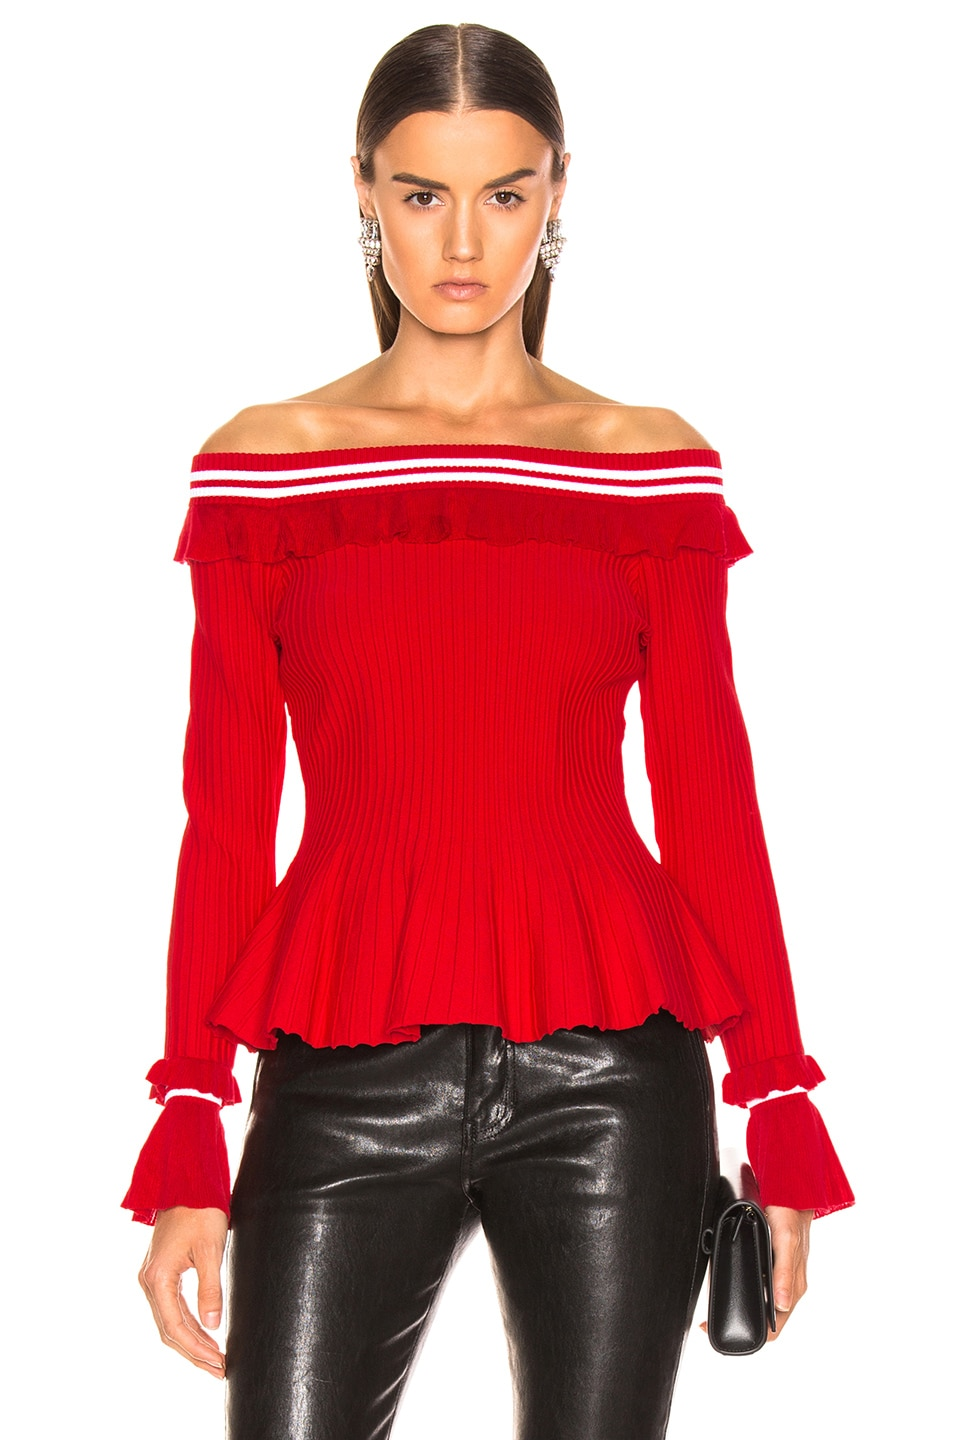 Image 1 of JONATHAN SIMKHAI for FWRD Off the Shoulder Ruffle Top in Red & White